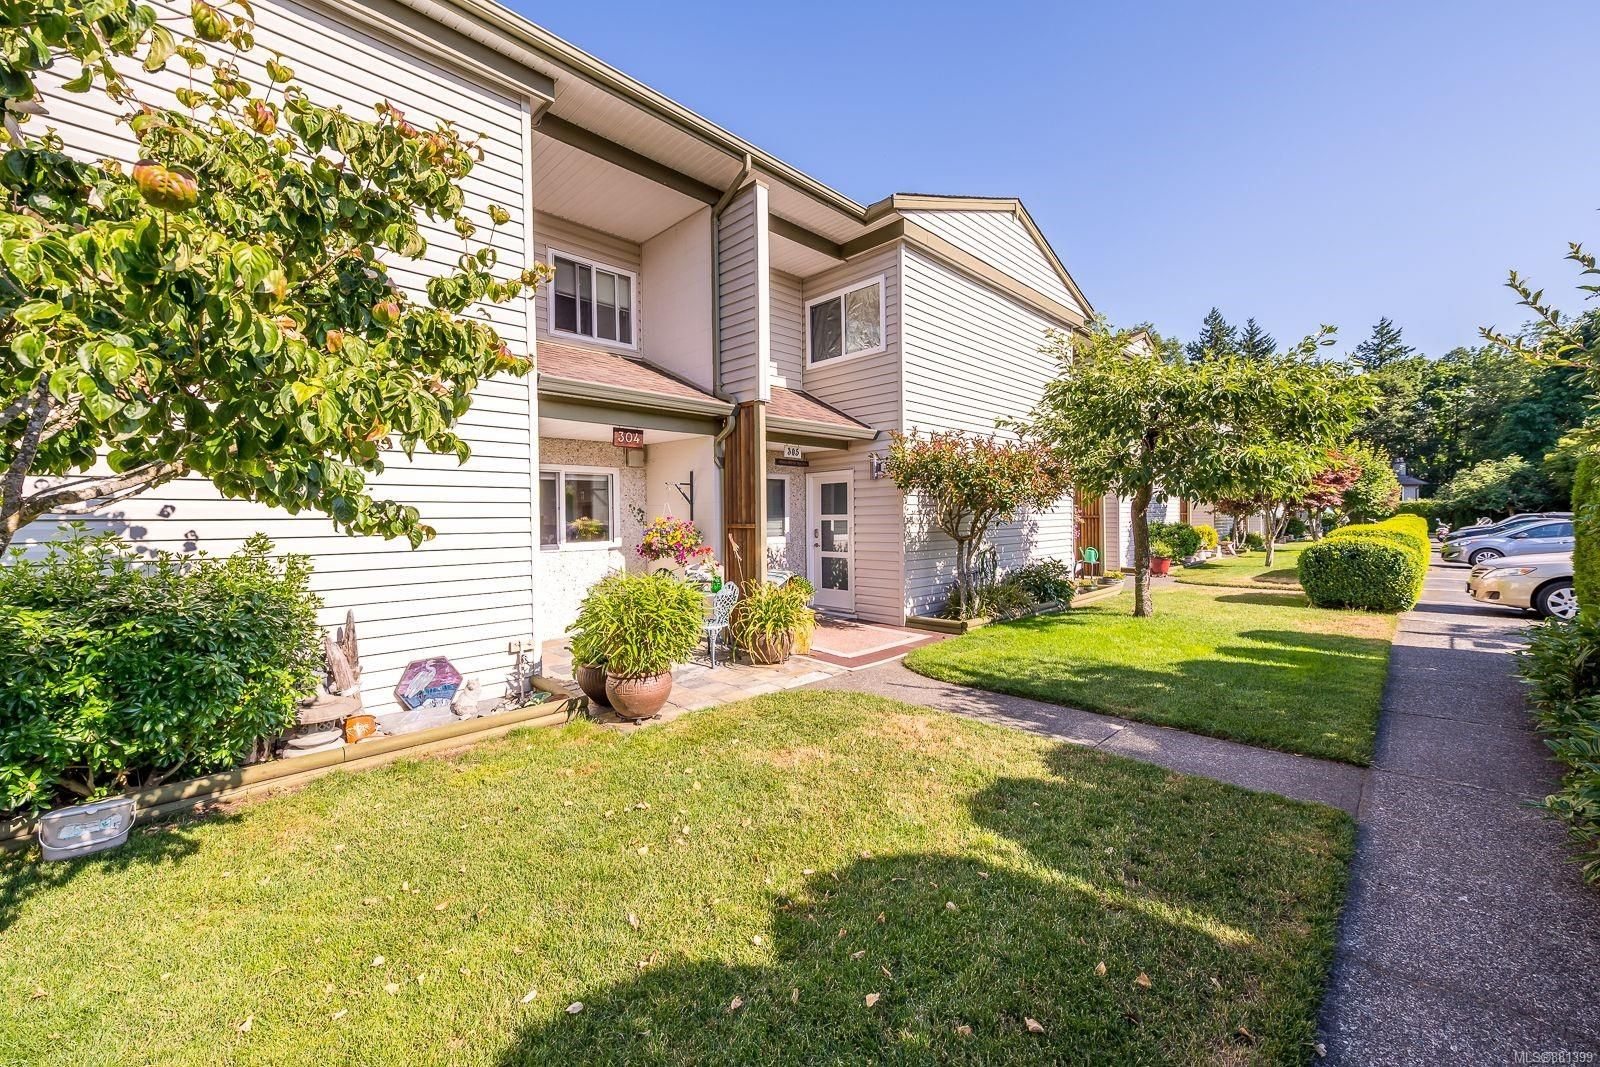 Main Photo: 304 1537 Noel Ave in : CV Comox (Town of) Row/Townhouse for sale (Comox Valley)  : MLS®# 881399